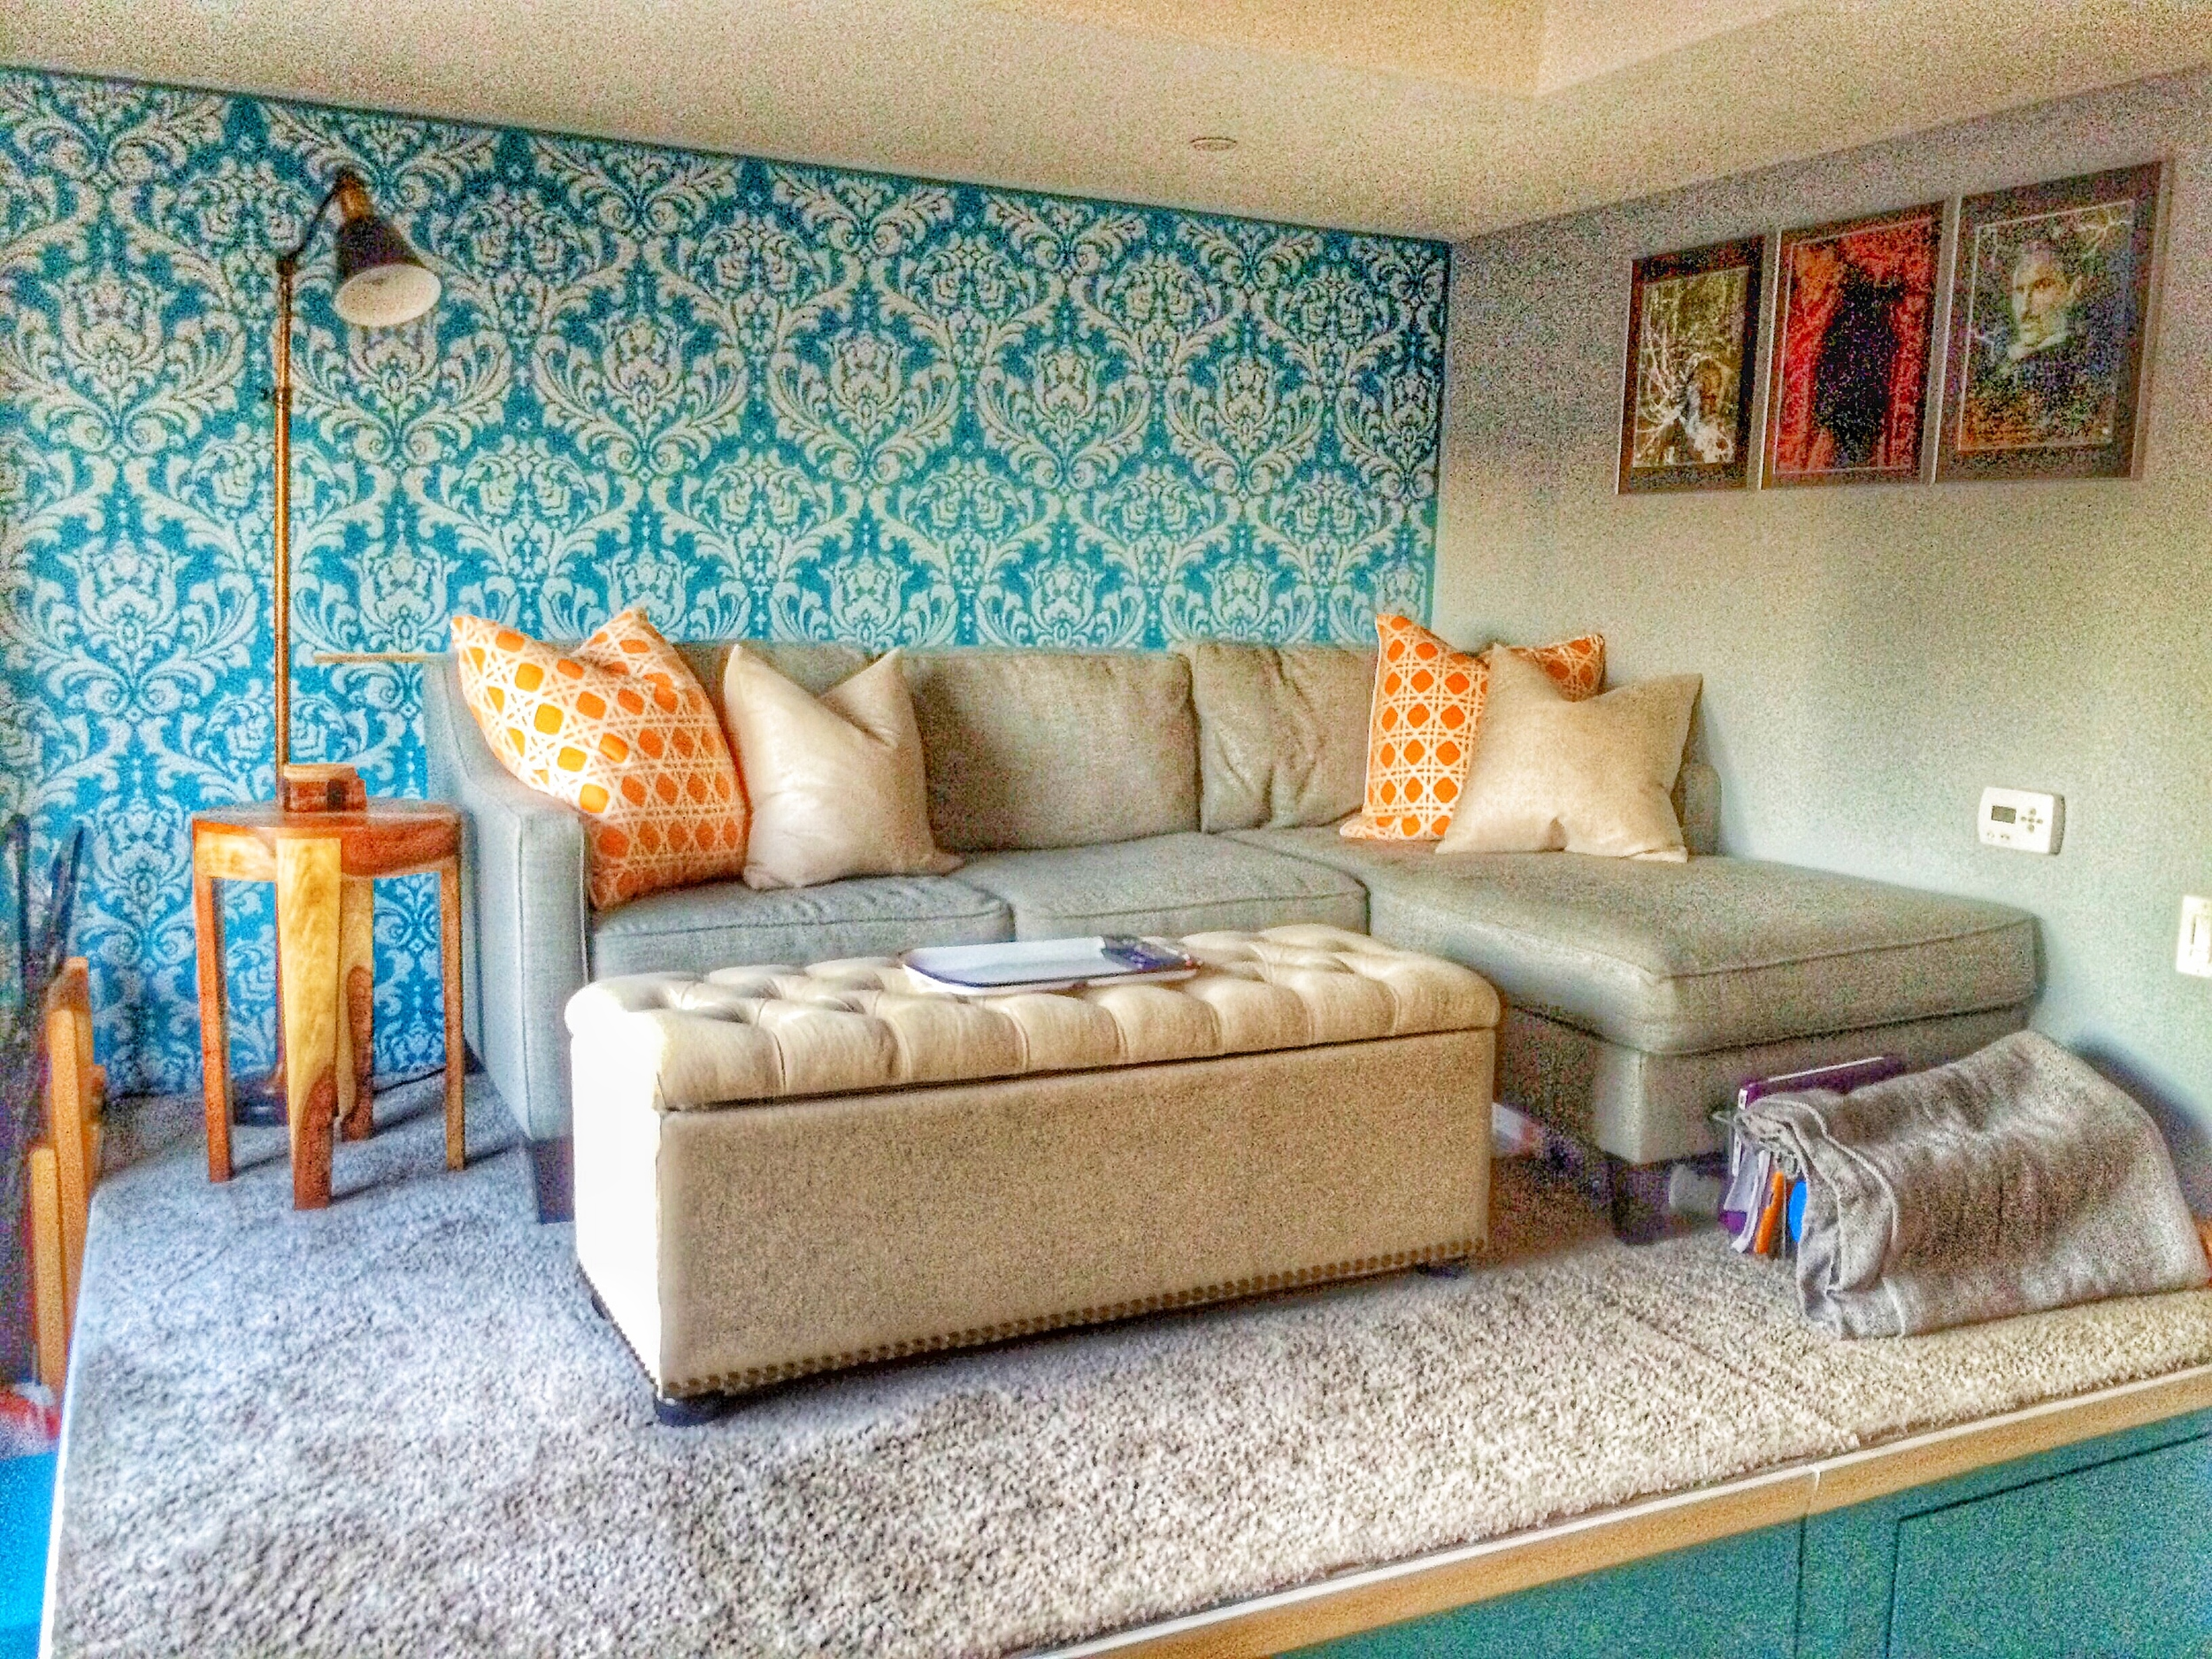 Teal accent wall with damask stencil in gray